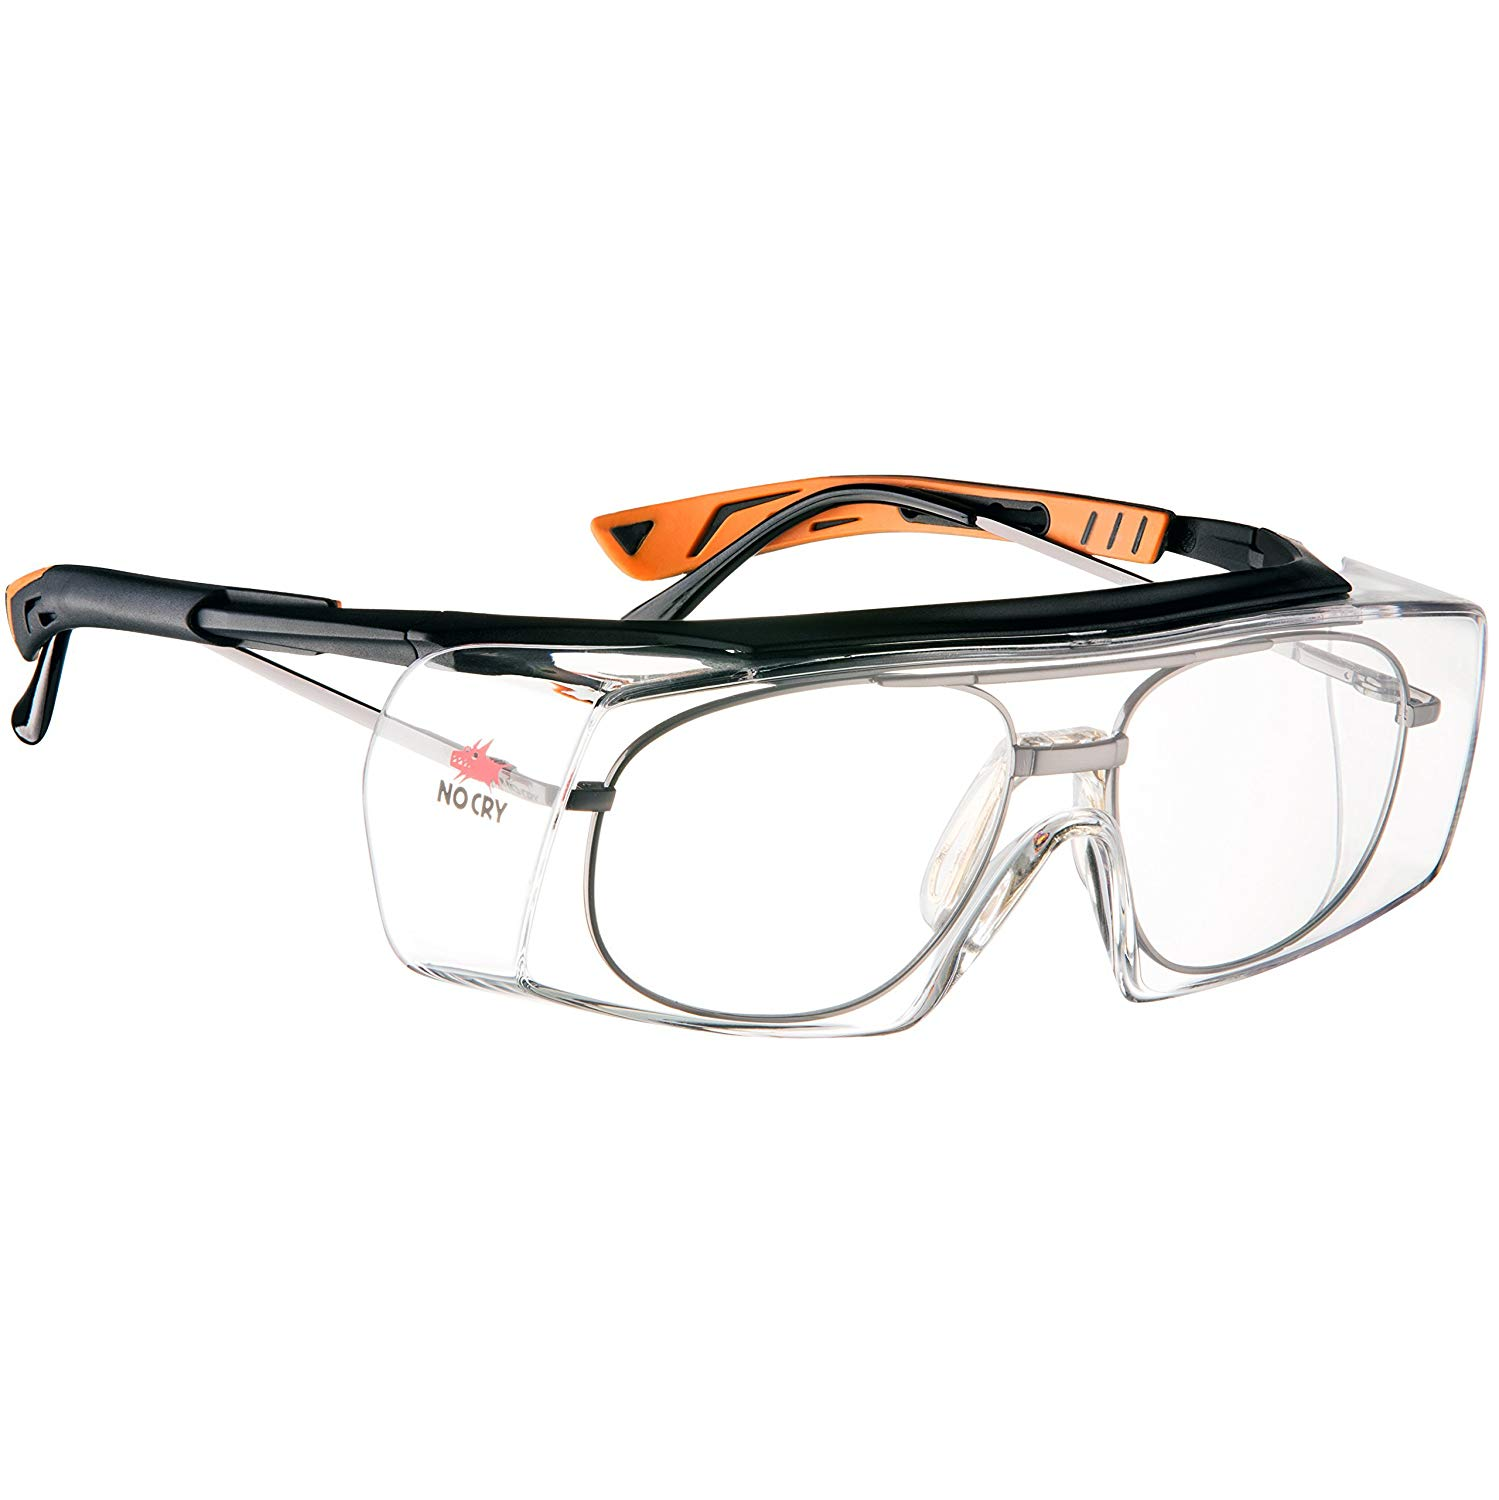 Preparedness For People Who Wear Glasses Or Contact Lenses